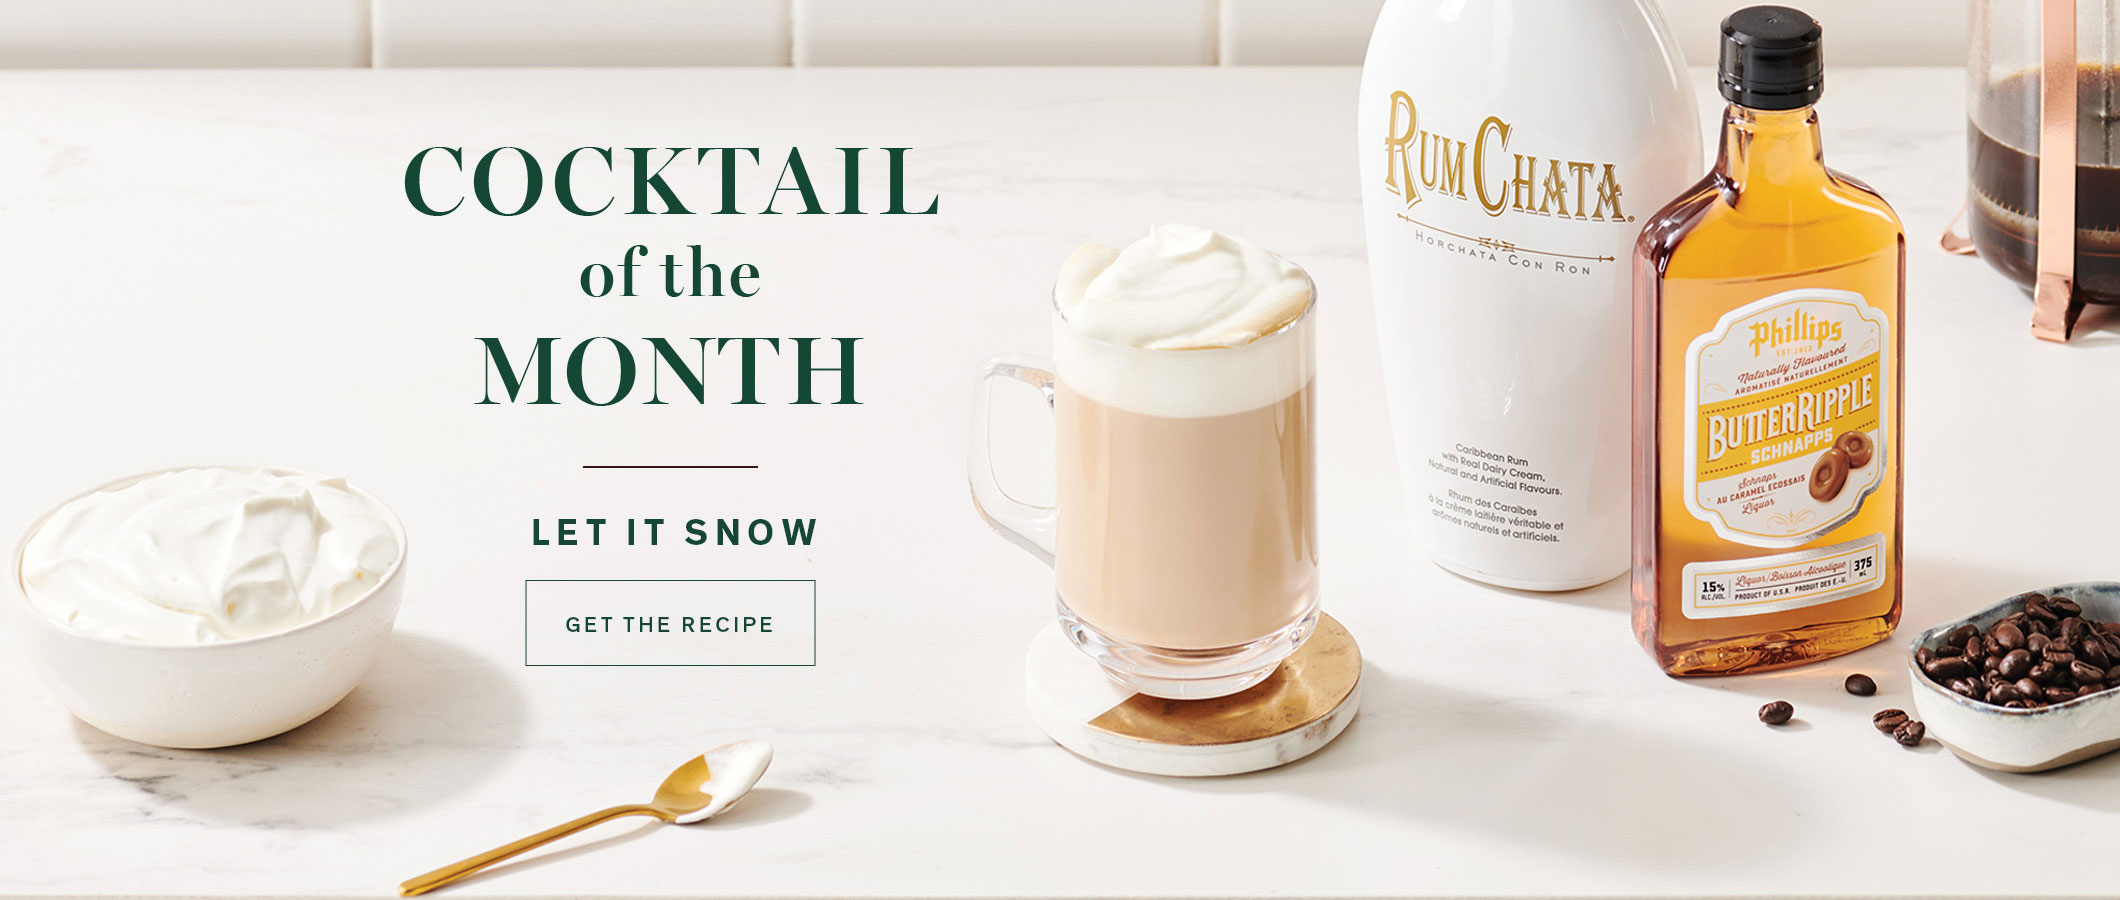 Cocktail of the Month  Let it Snow. GET THE RECIPE